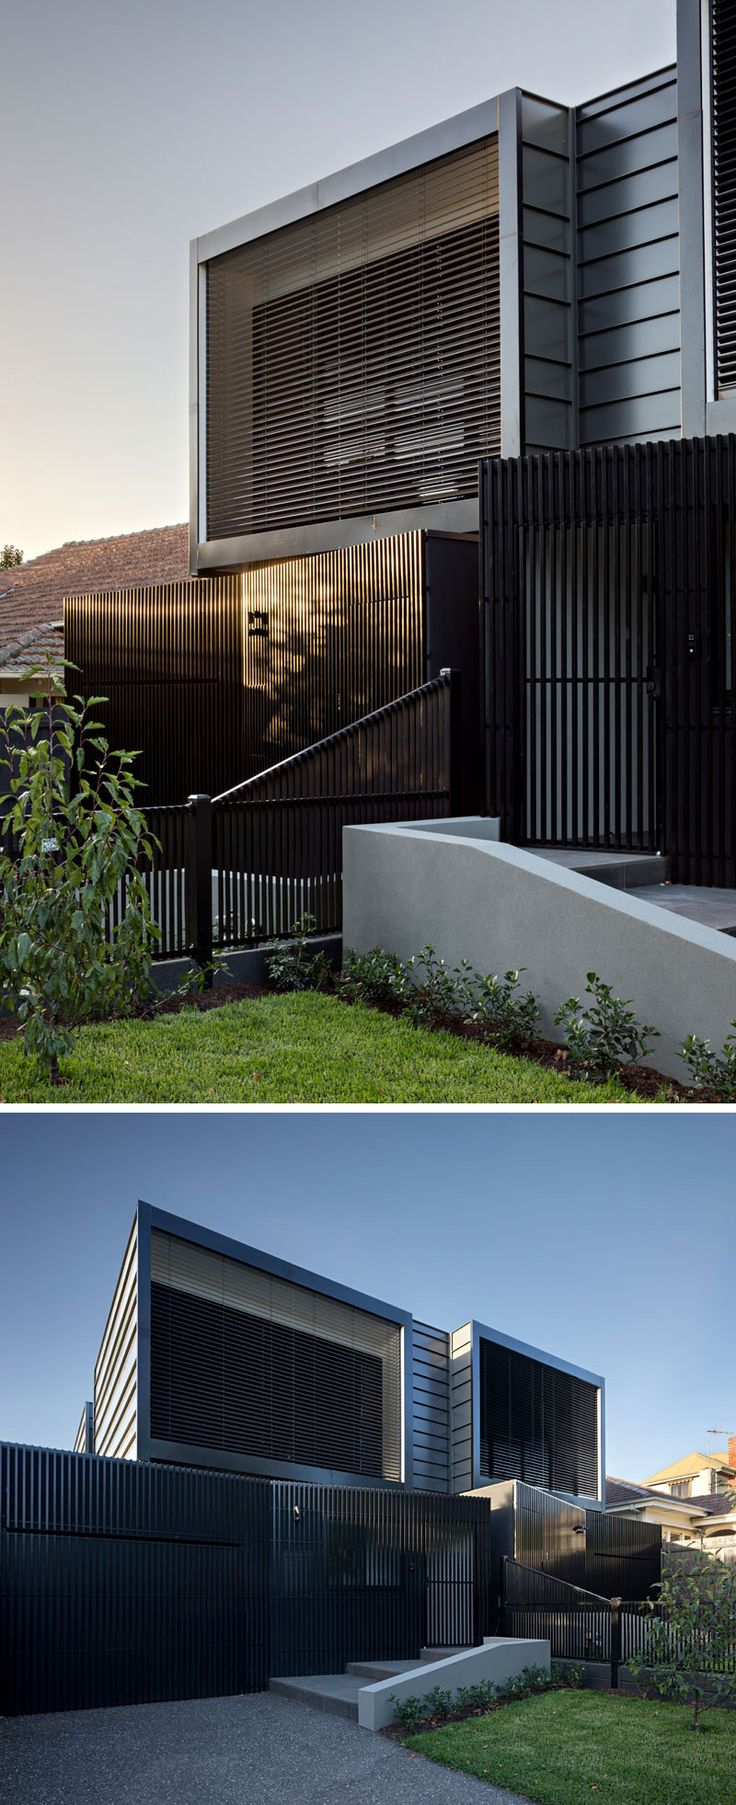 The exterior of these black modern townhouses have lightweight aluminium batten screening, and metal cladding.